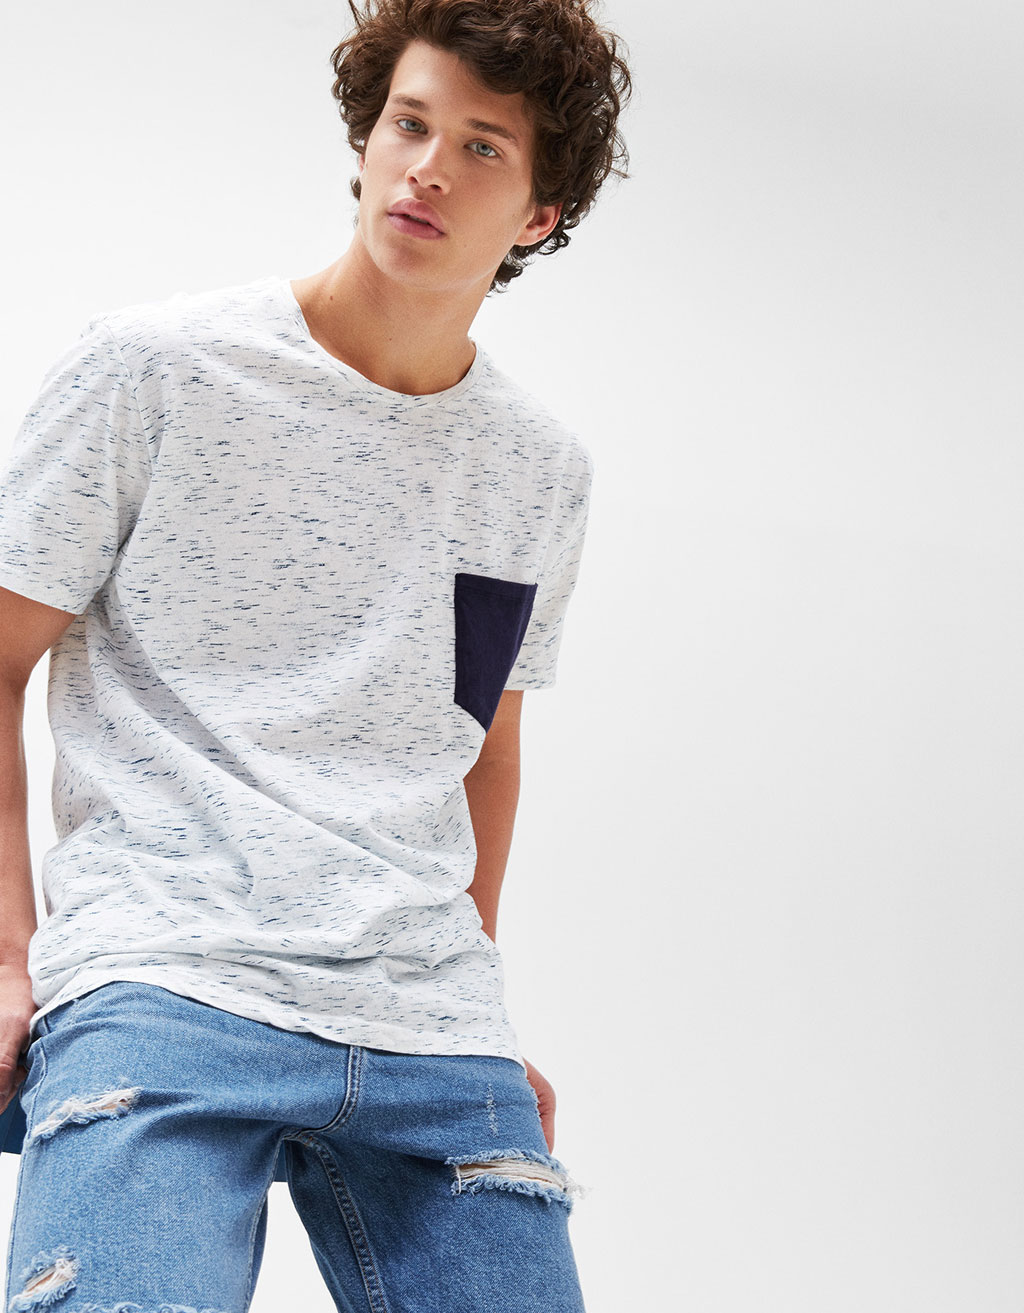 Speckled T-shirt with contrasting pocket